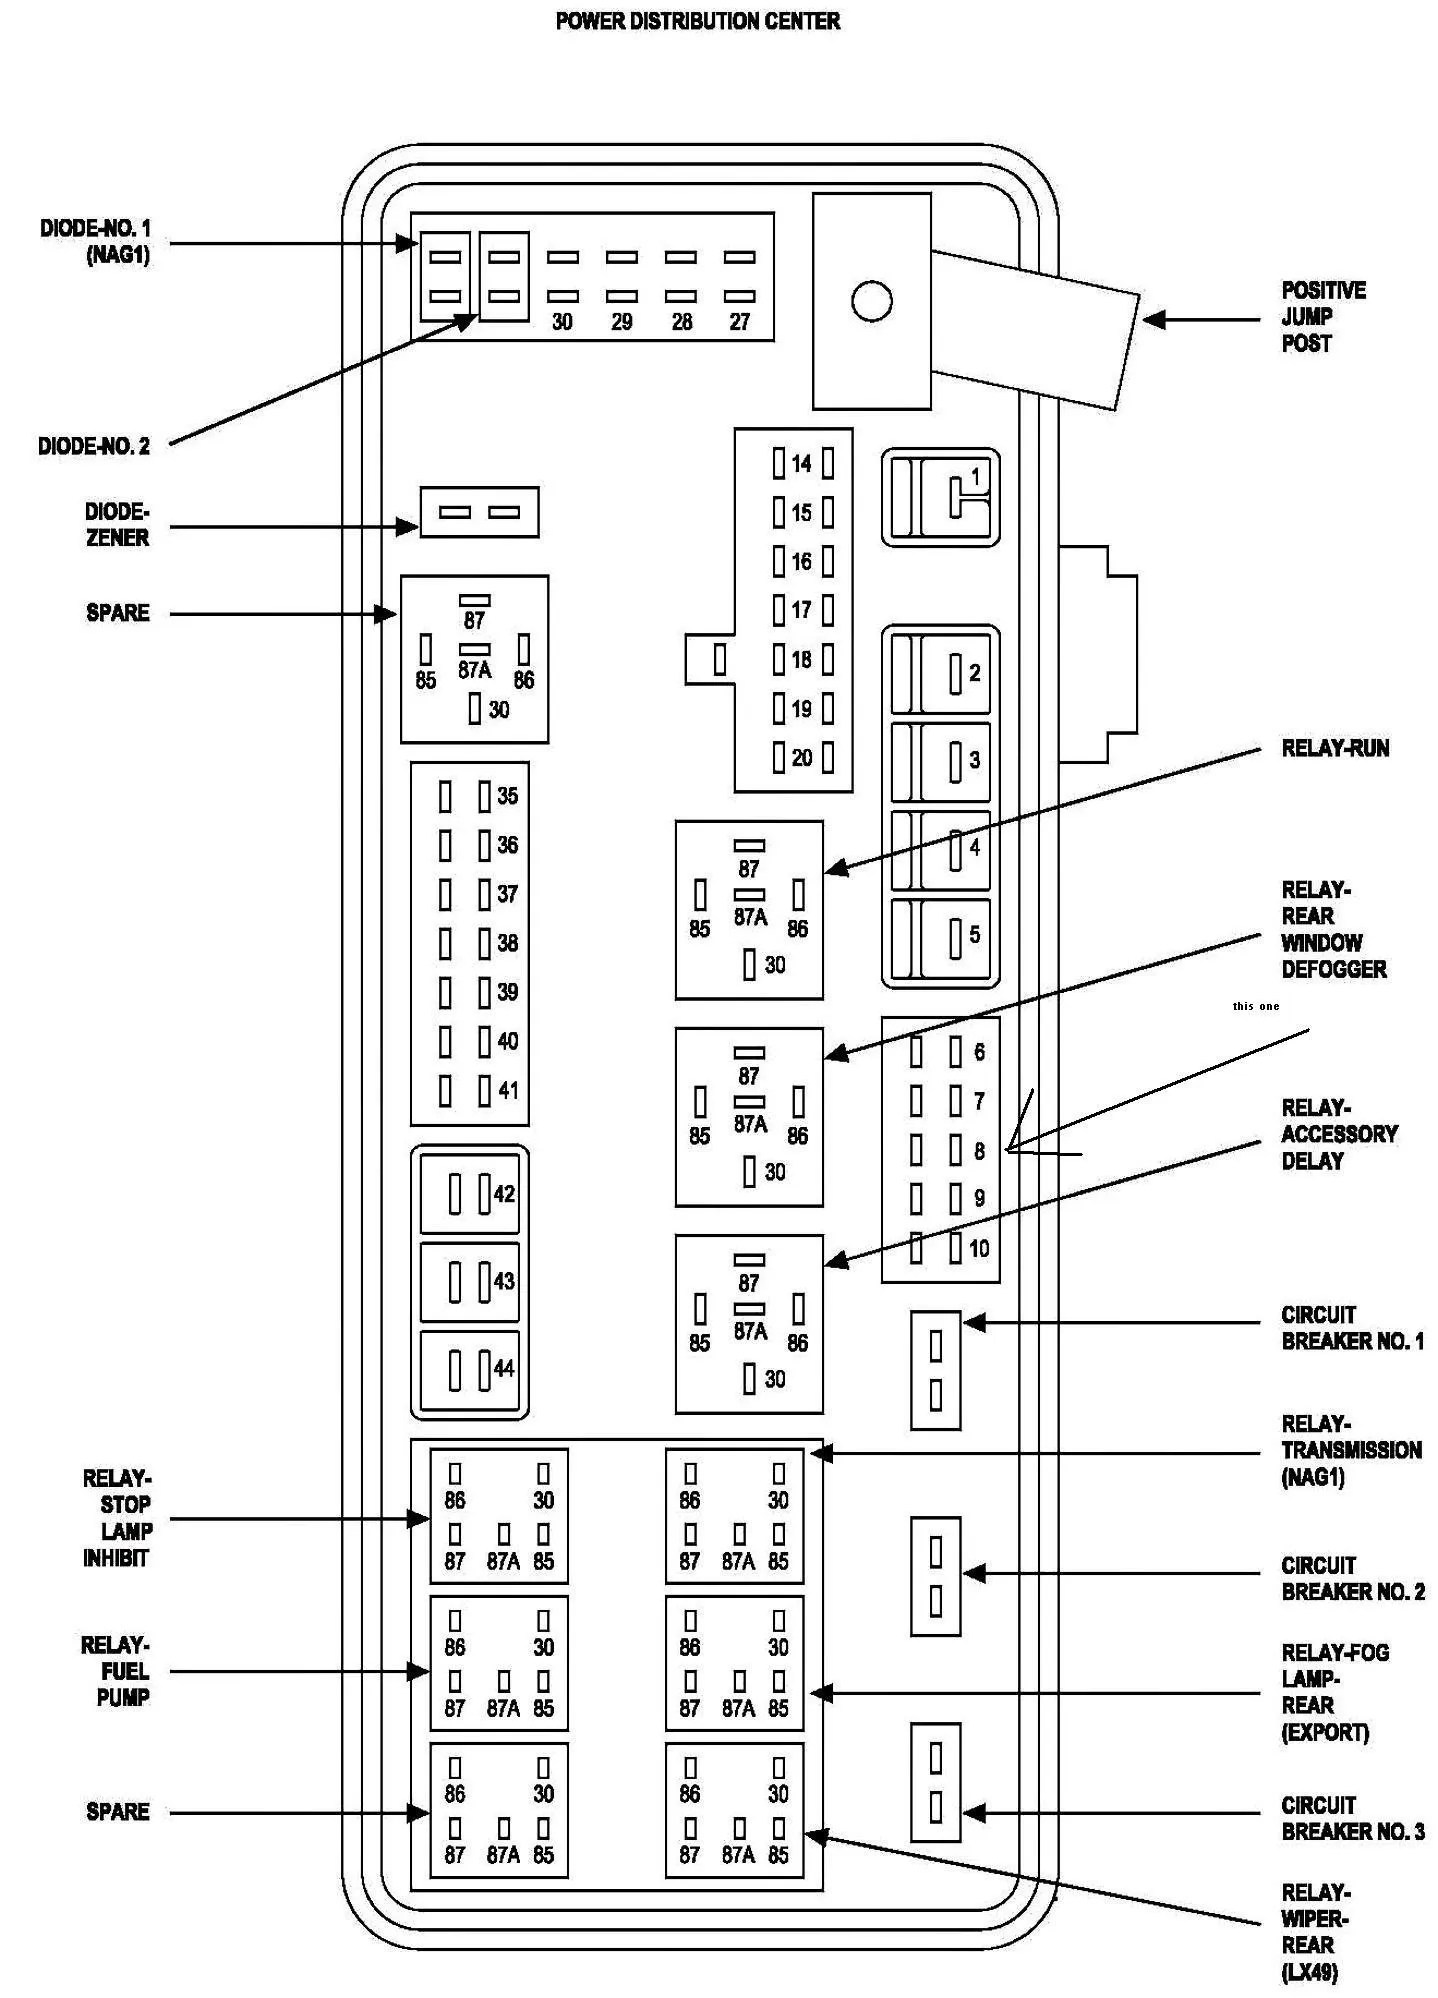 hight resolution of 2010 challenger fuse diagram wiring diagram row wiring schematic for 2010 dodge challenger source 2010 challenger stereo